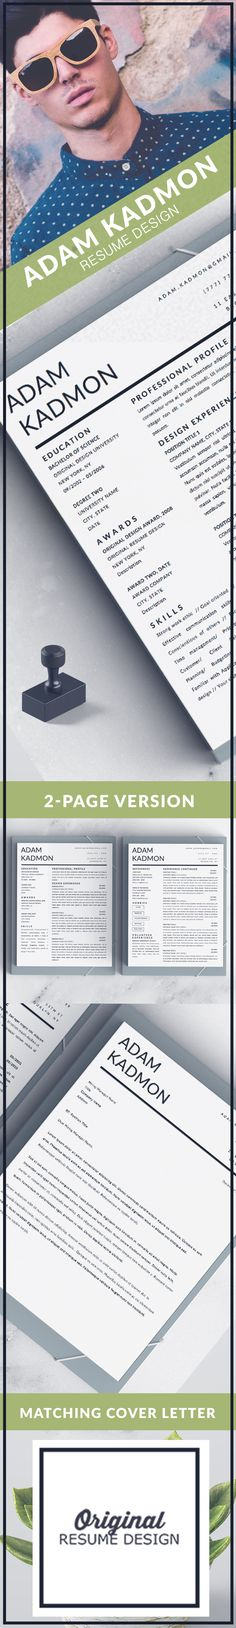 modern resume template editable in ms word including 2